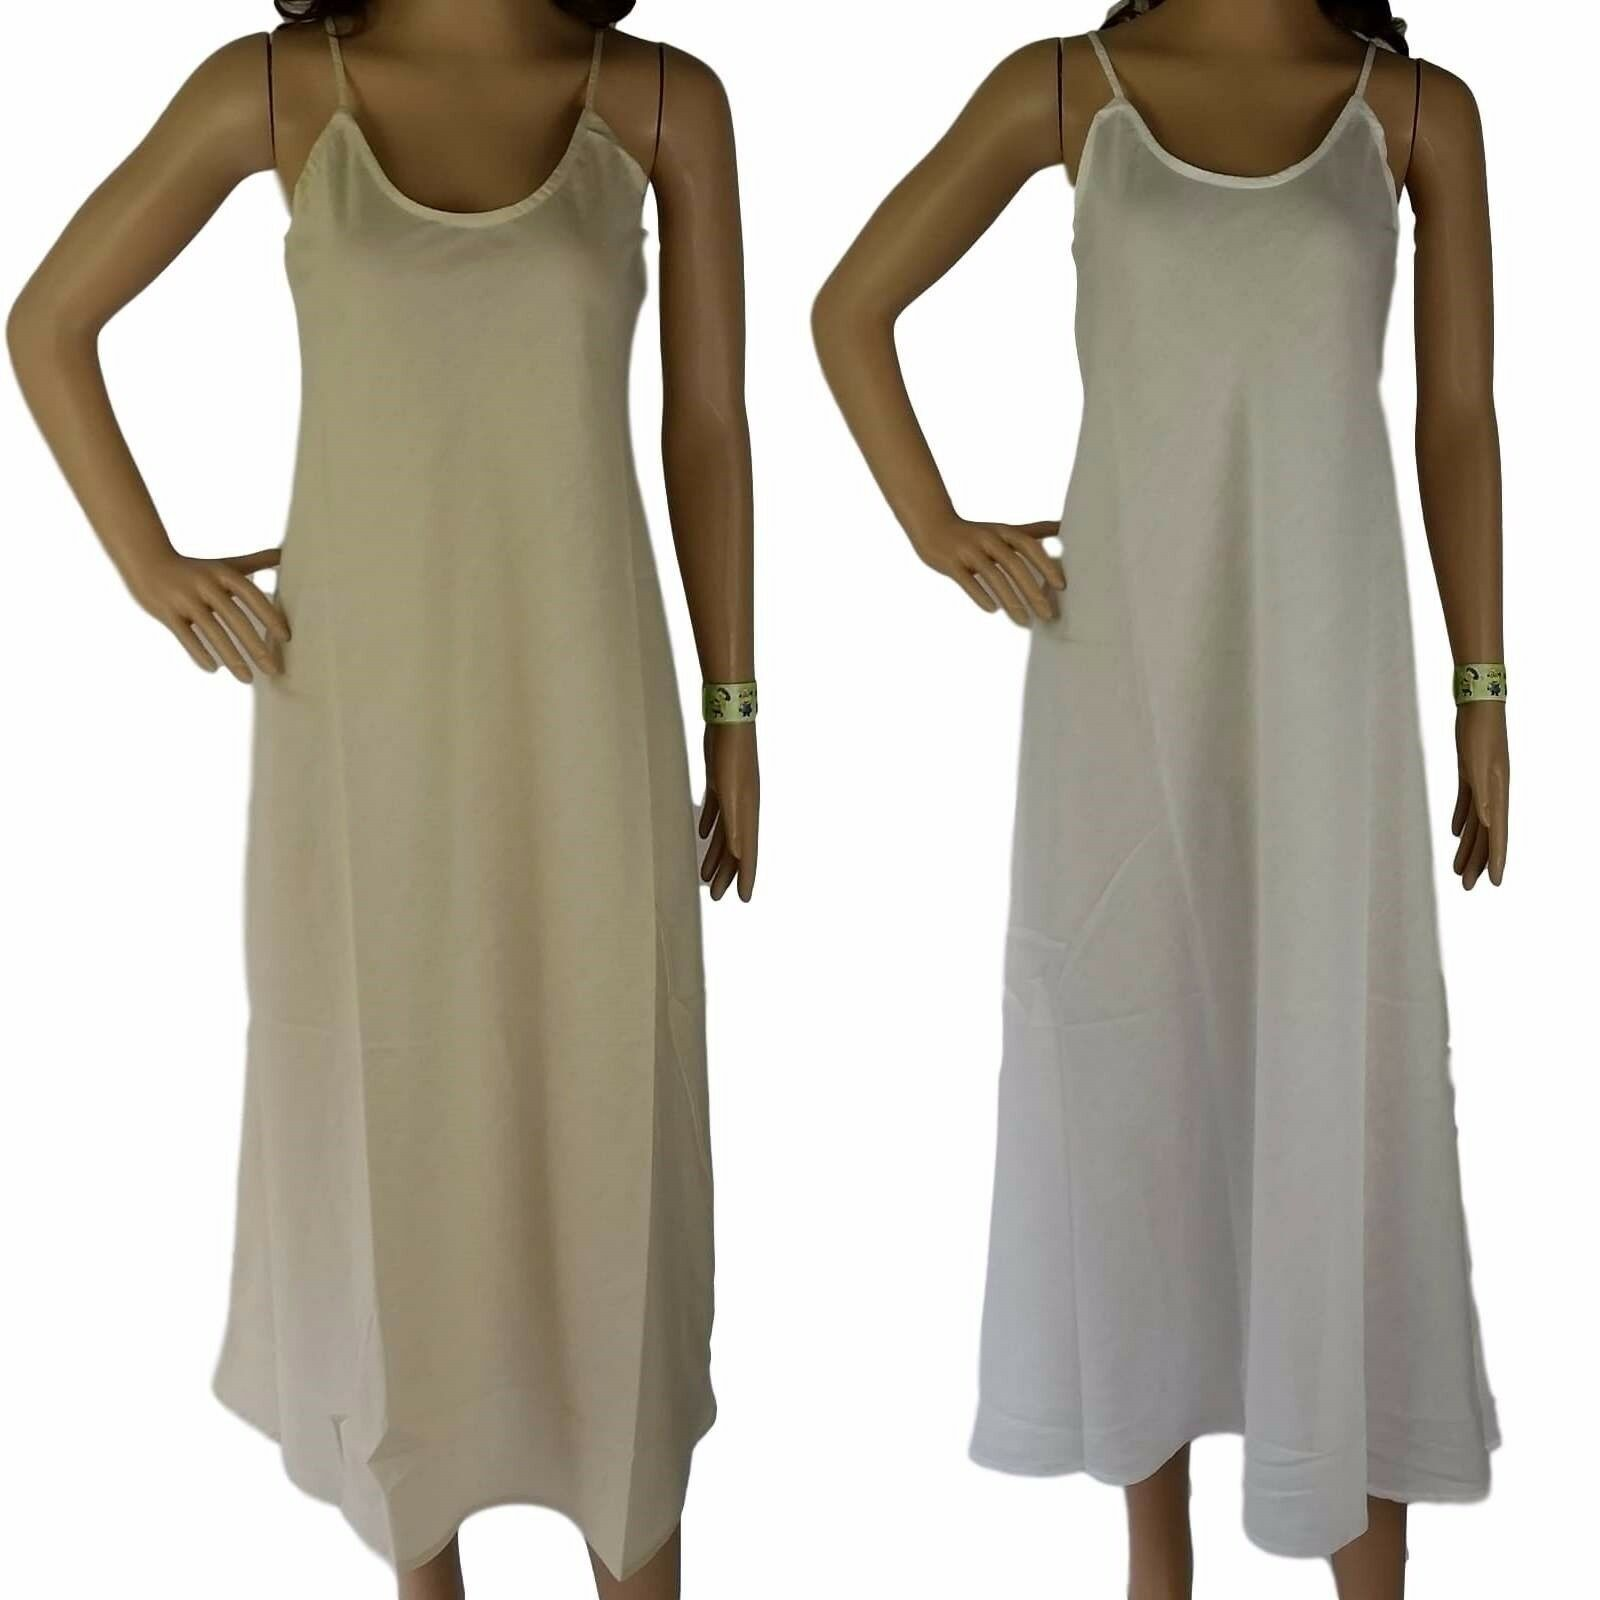 2 x COTTON SLIPS  NEW Long Womens Full Slip Size 12-20 Petticoats AUS Seller